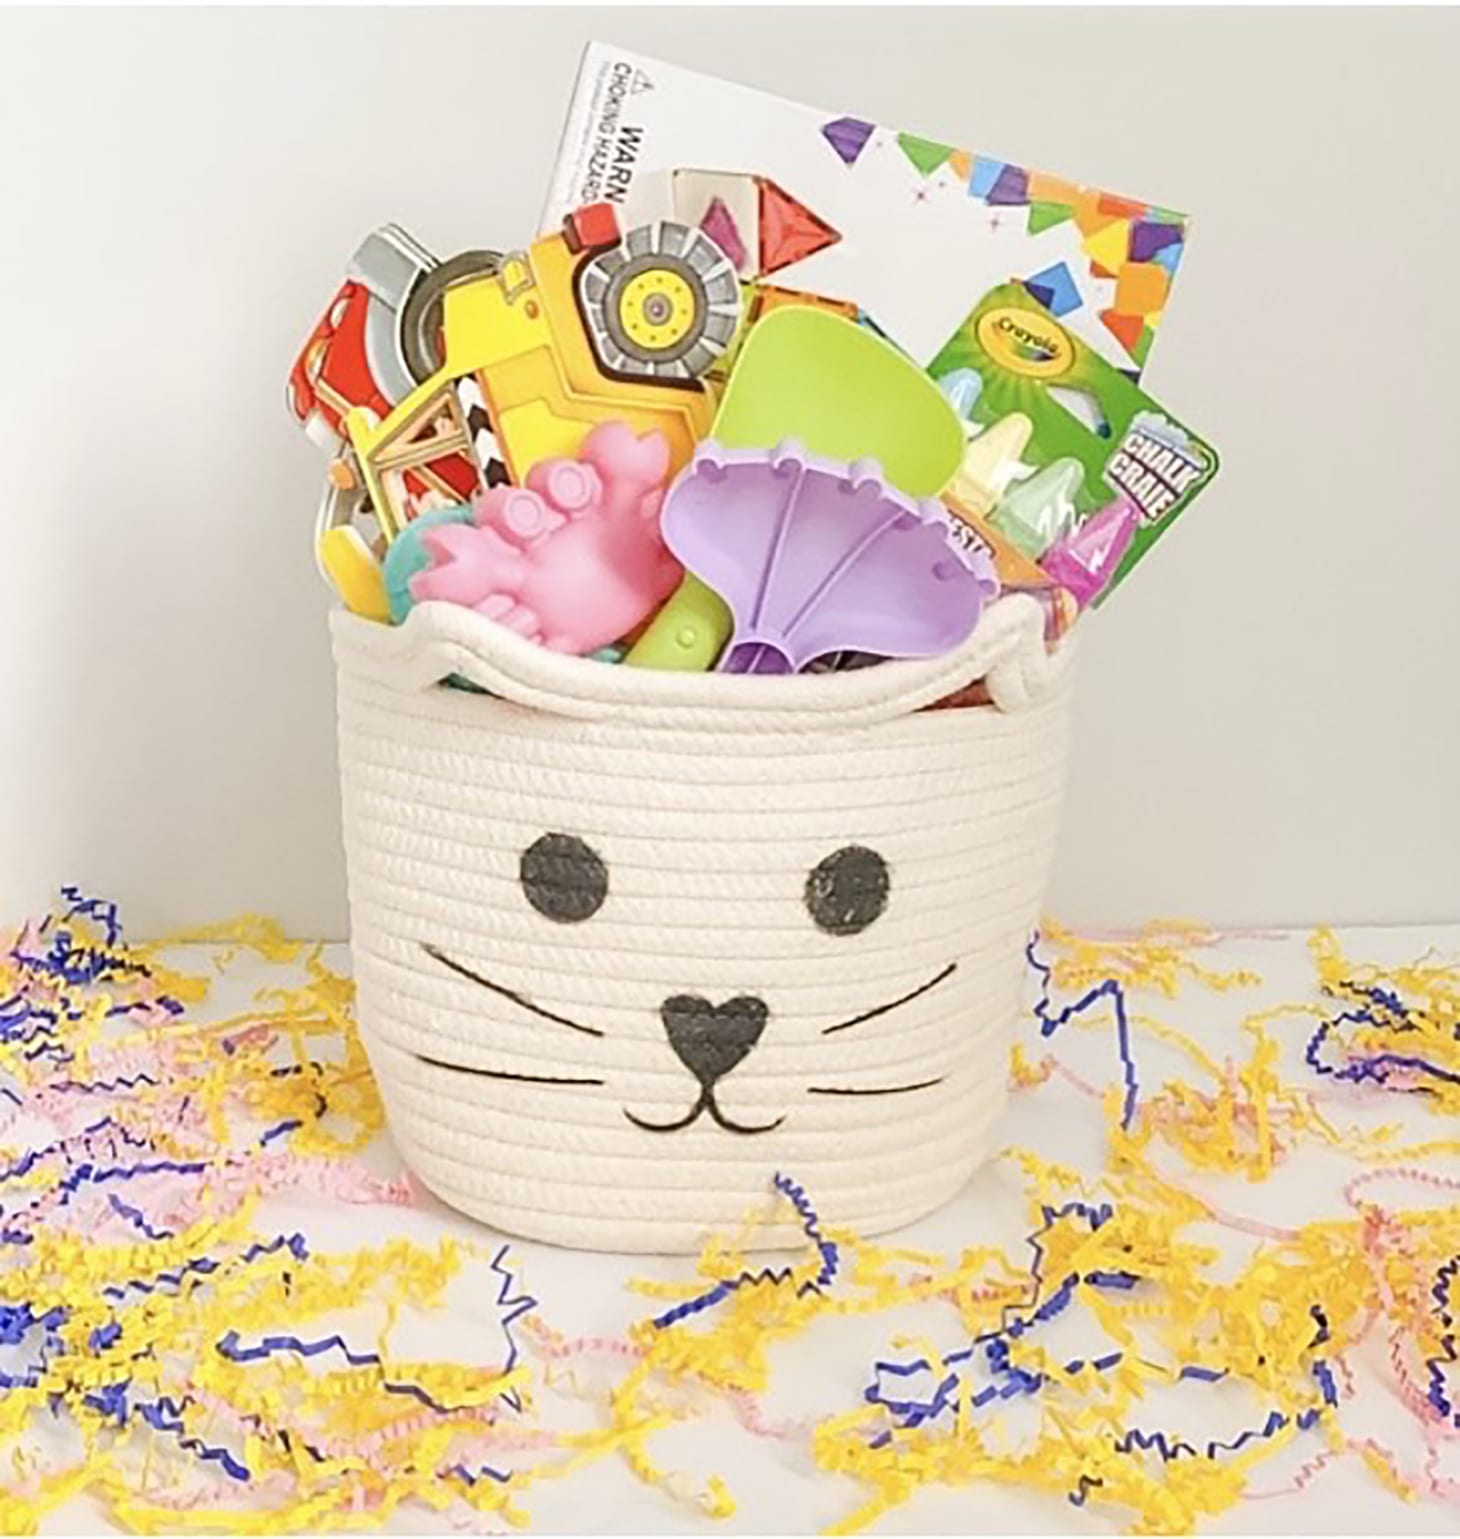 Presents for Kids in a basket with a bunny face on it.